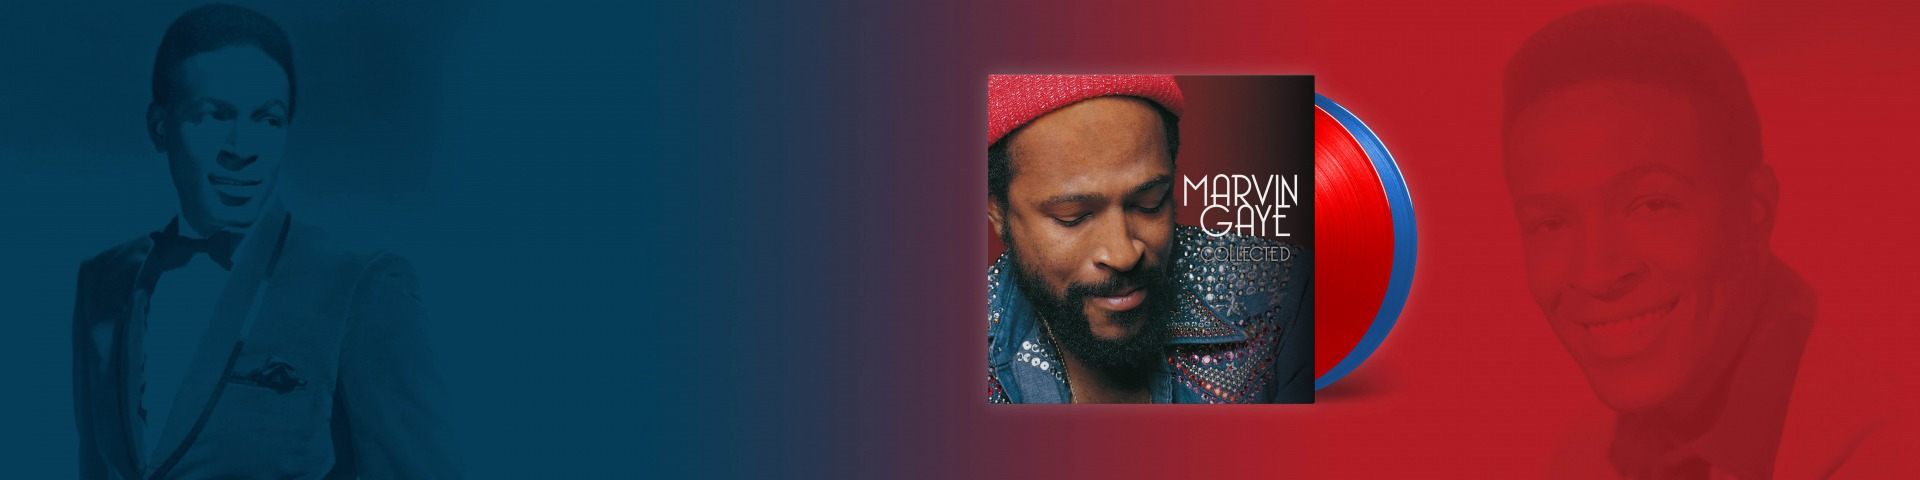 Marvin Gaye Is 80 - Collected